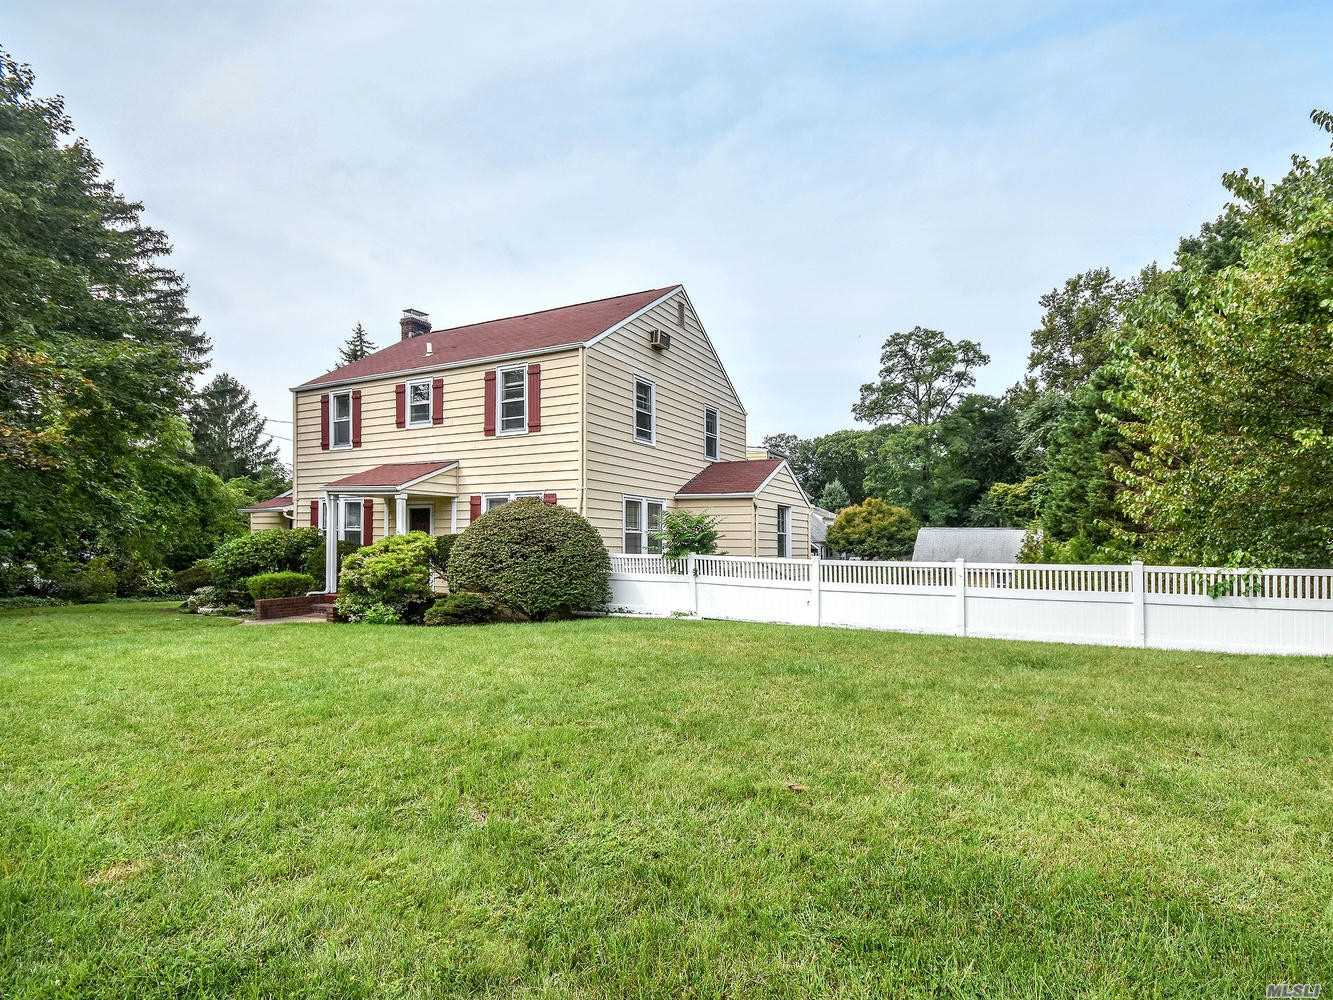 Bright And Spacious Updated 1918 Classic Colonial Located In Close Proximity To Long Island Rail Road, North Shore School District Elementary, Middle School And High School, Shops, Major Highways And Parkways. Full Current Credit Report, References And NTN Background Check At A Cost of $35.00 For Each Adult Is Required. Small Pet May Be Ok On A Case By Case Basis And With Additional Security.